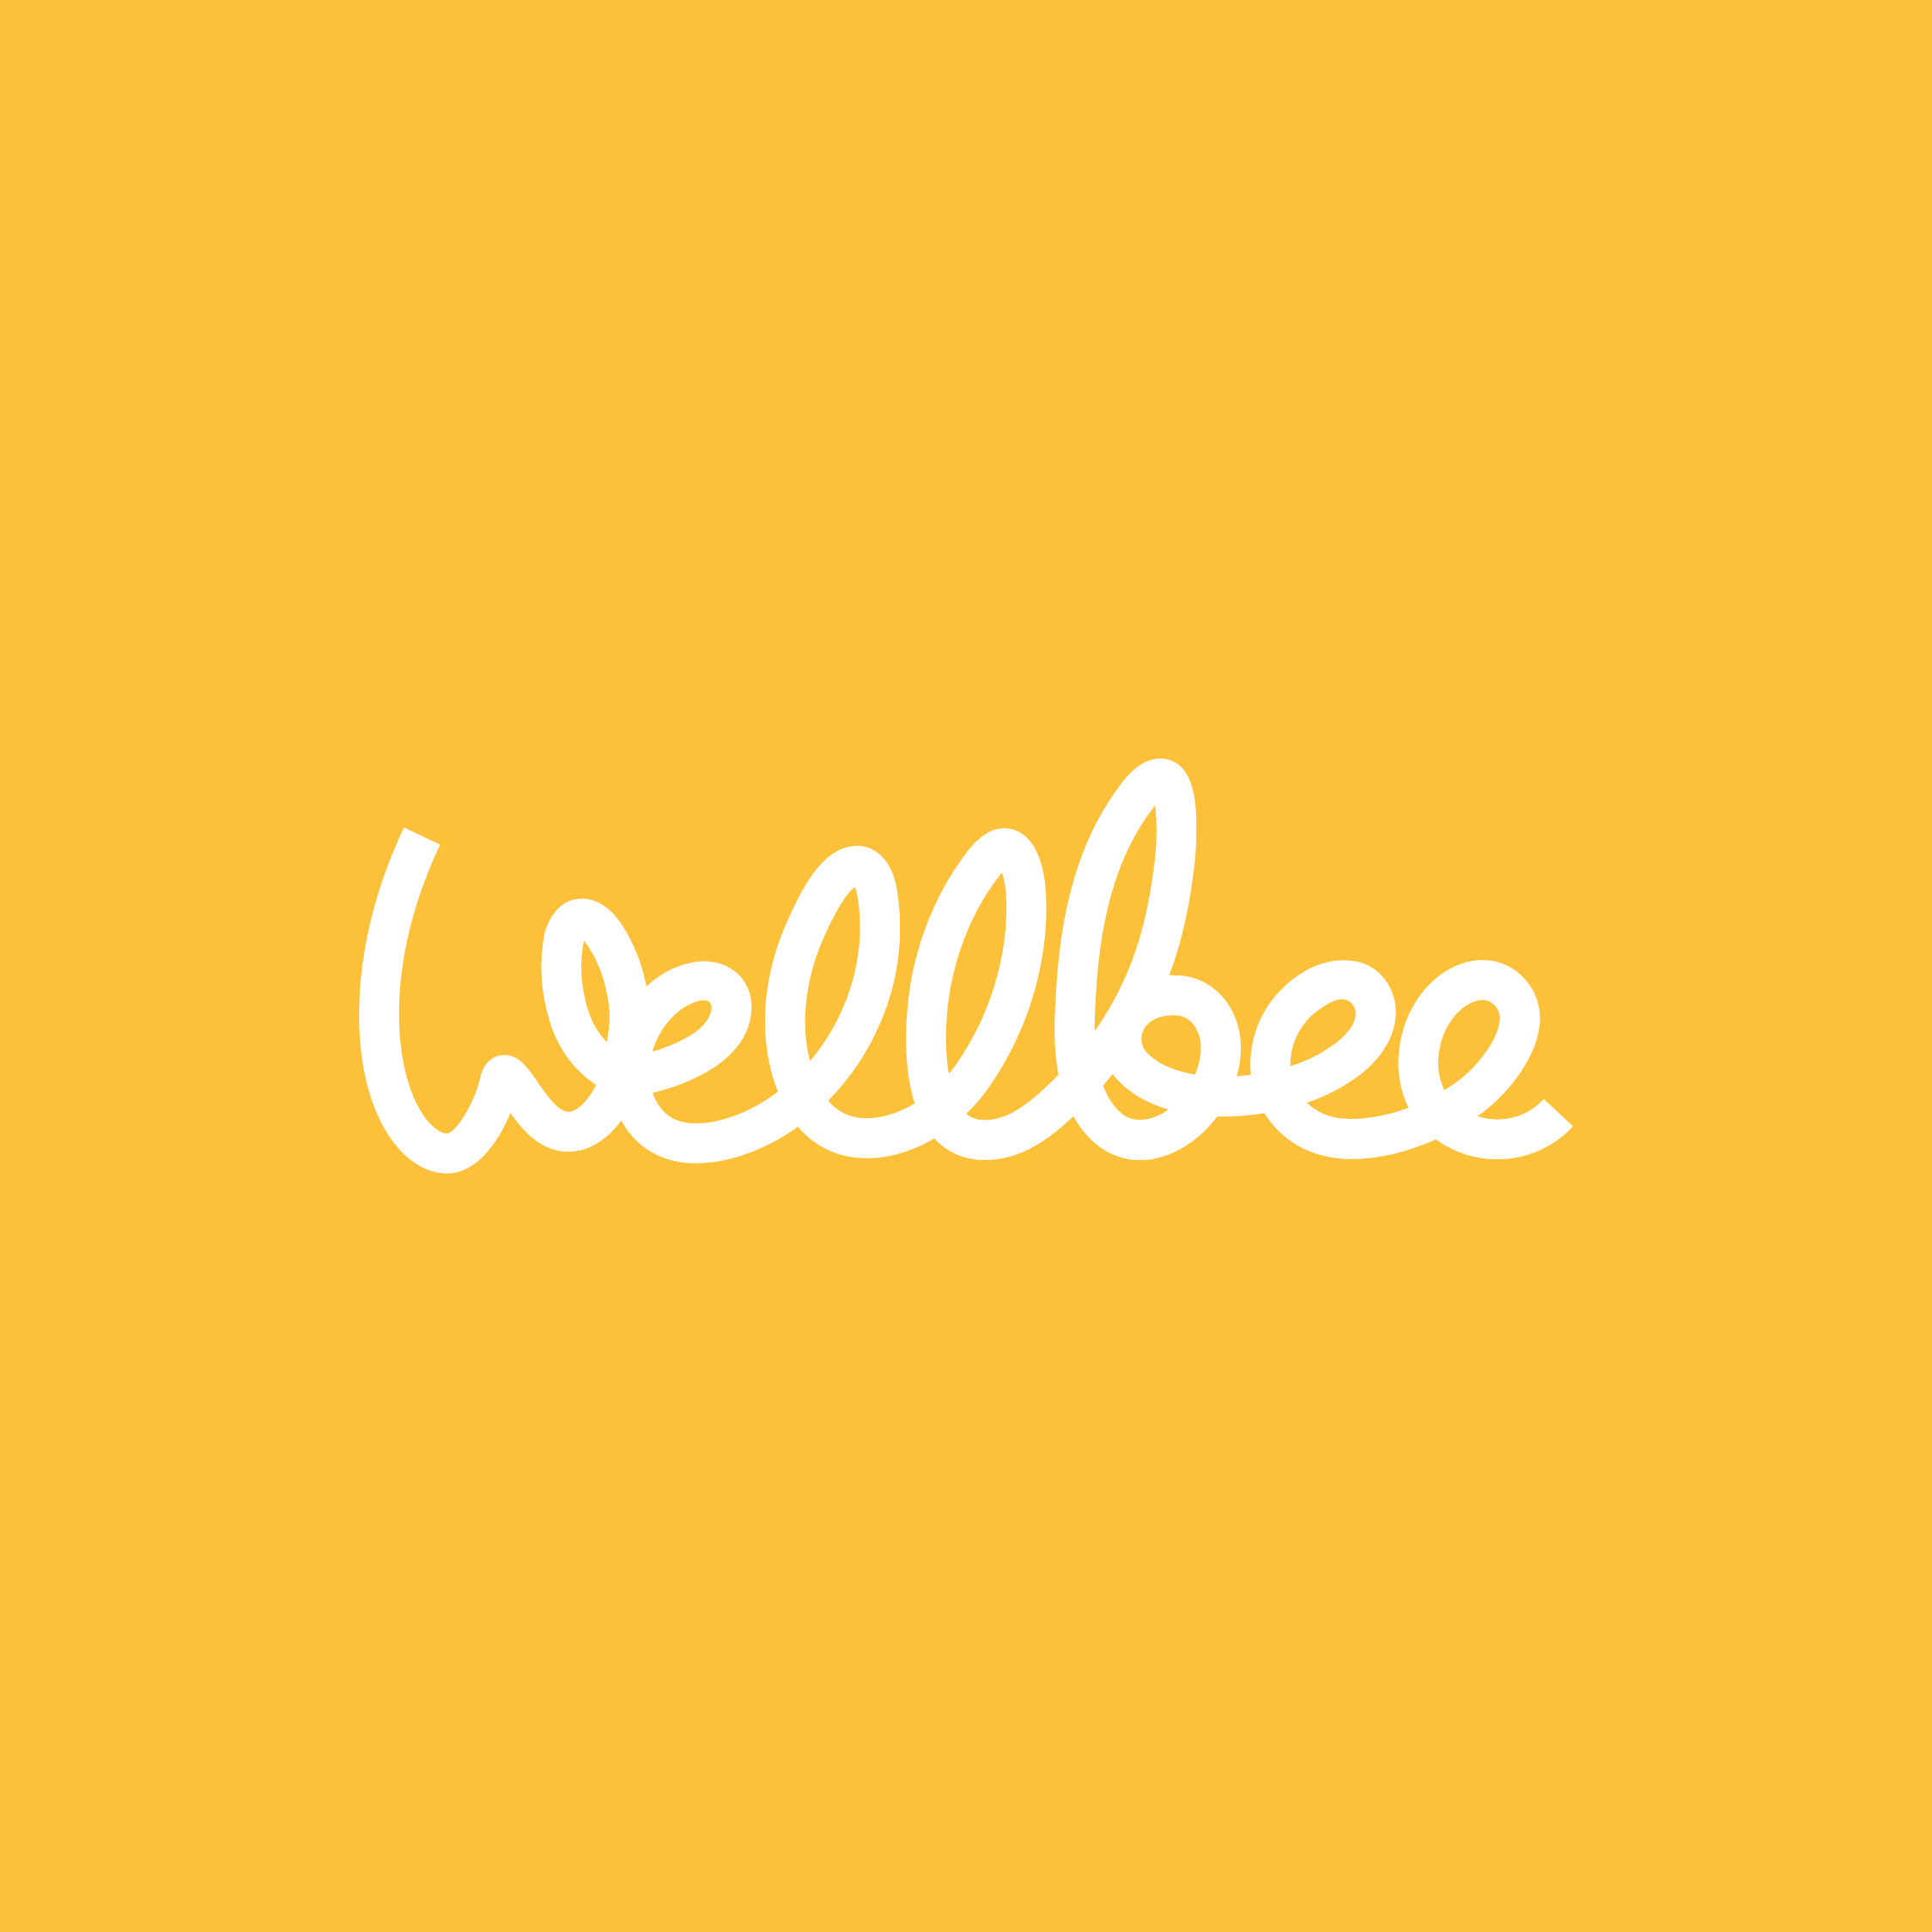 Wellbee logo by Ben Clark Design